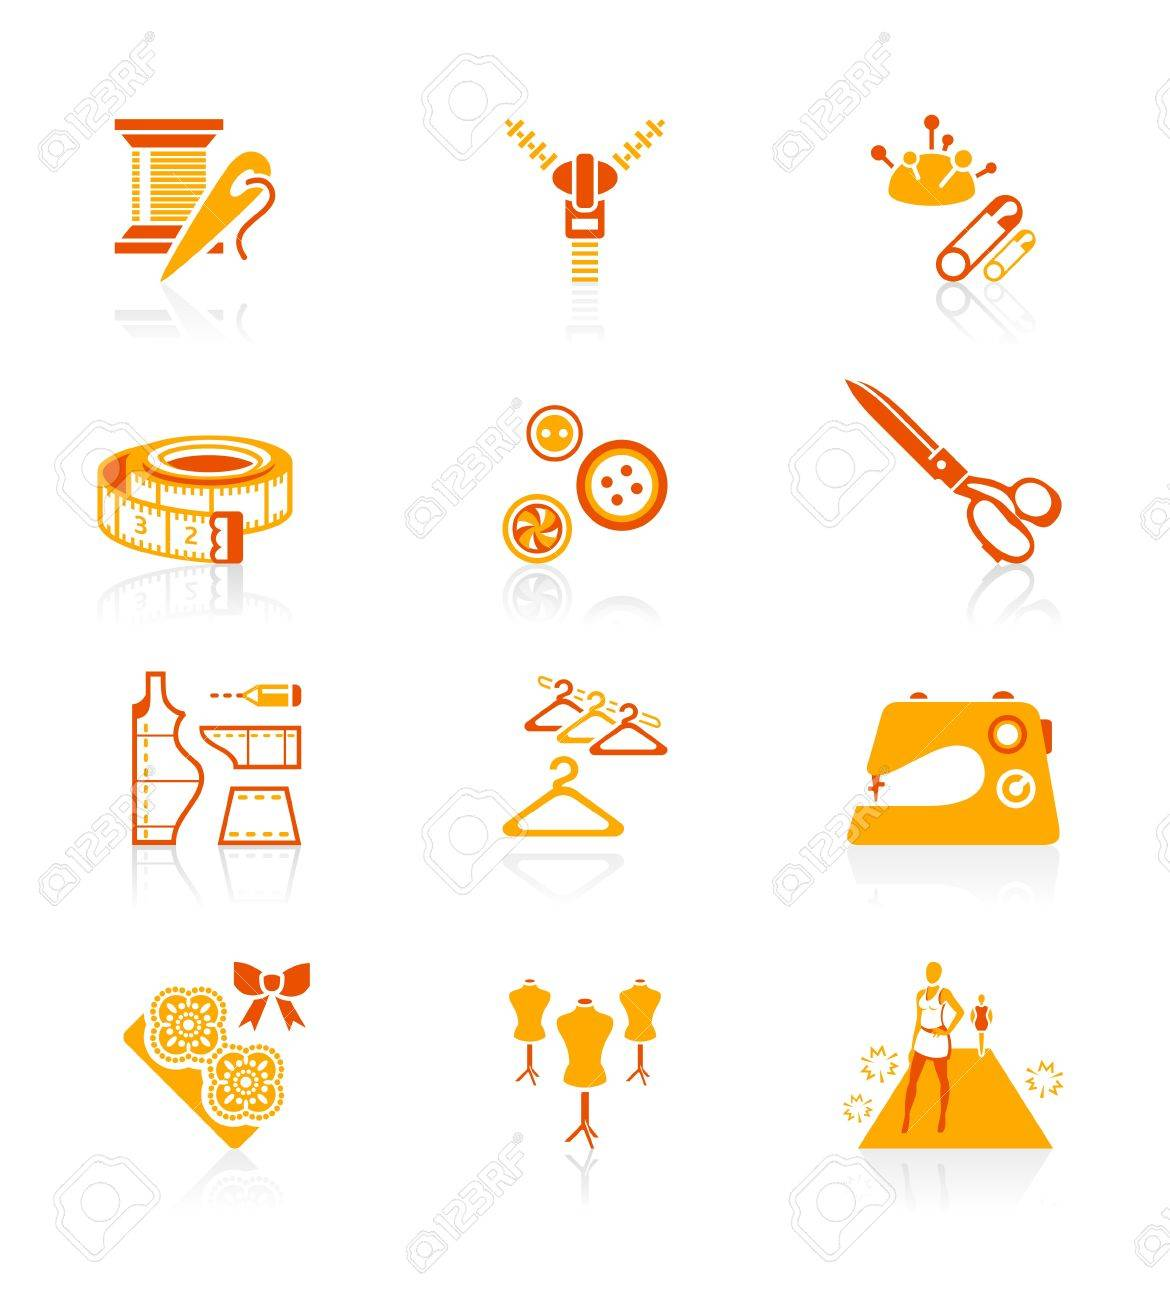 Fashion industry tools and objects red-orange icon-set Stock Vector - 12792838